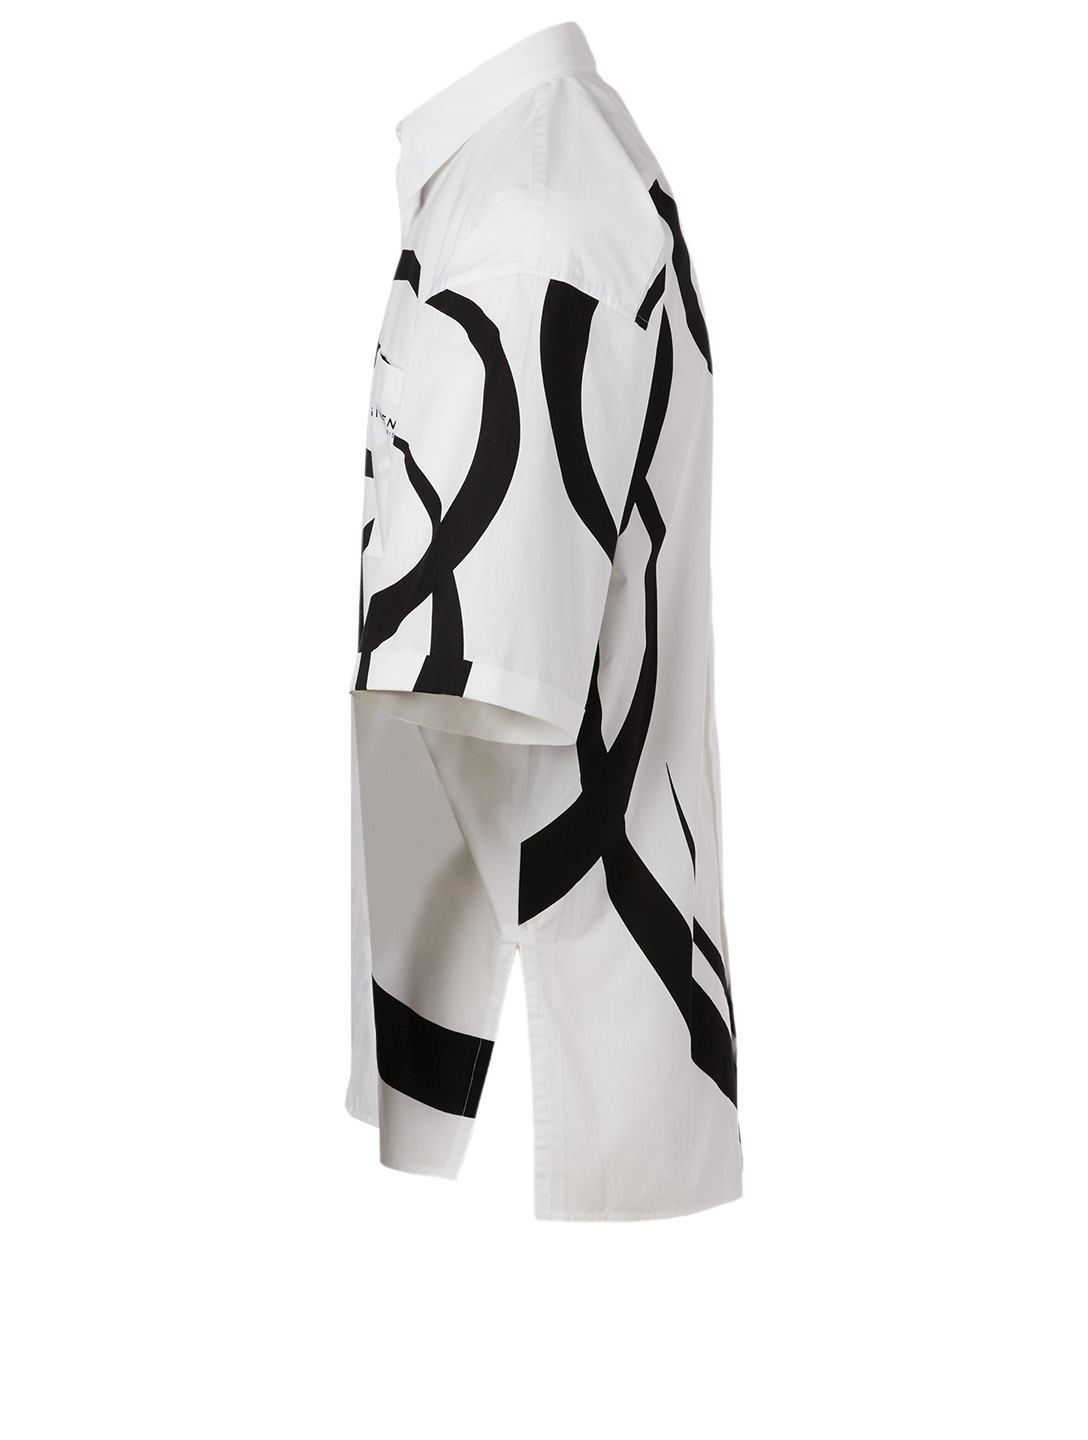 GIVENCHY Oversized Shirt In Calligraphic Print Men's Multi